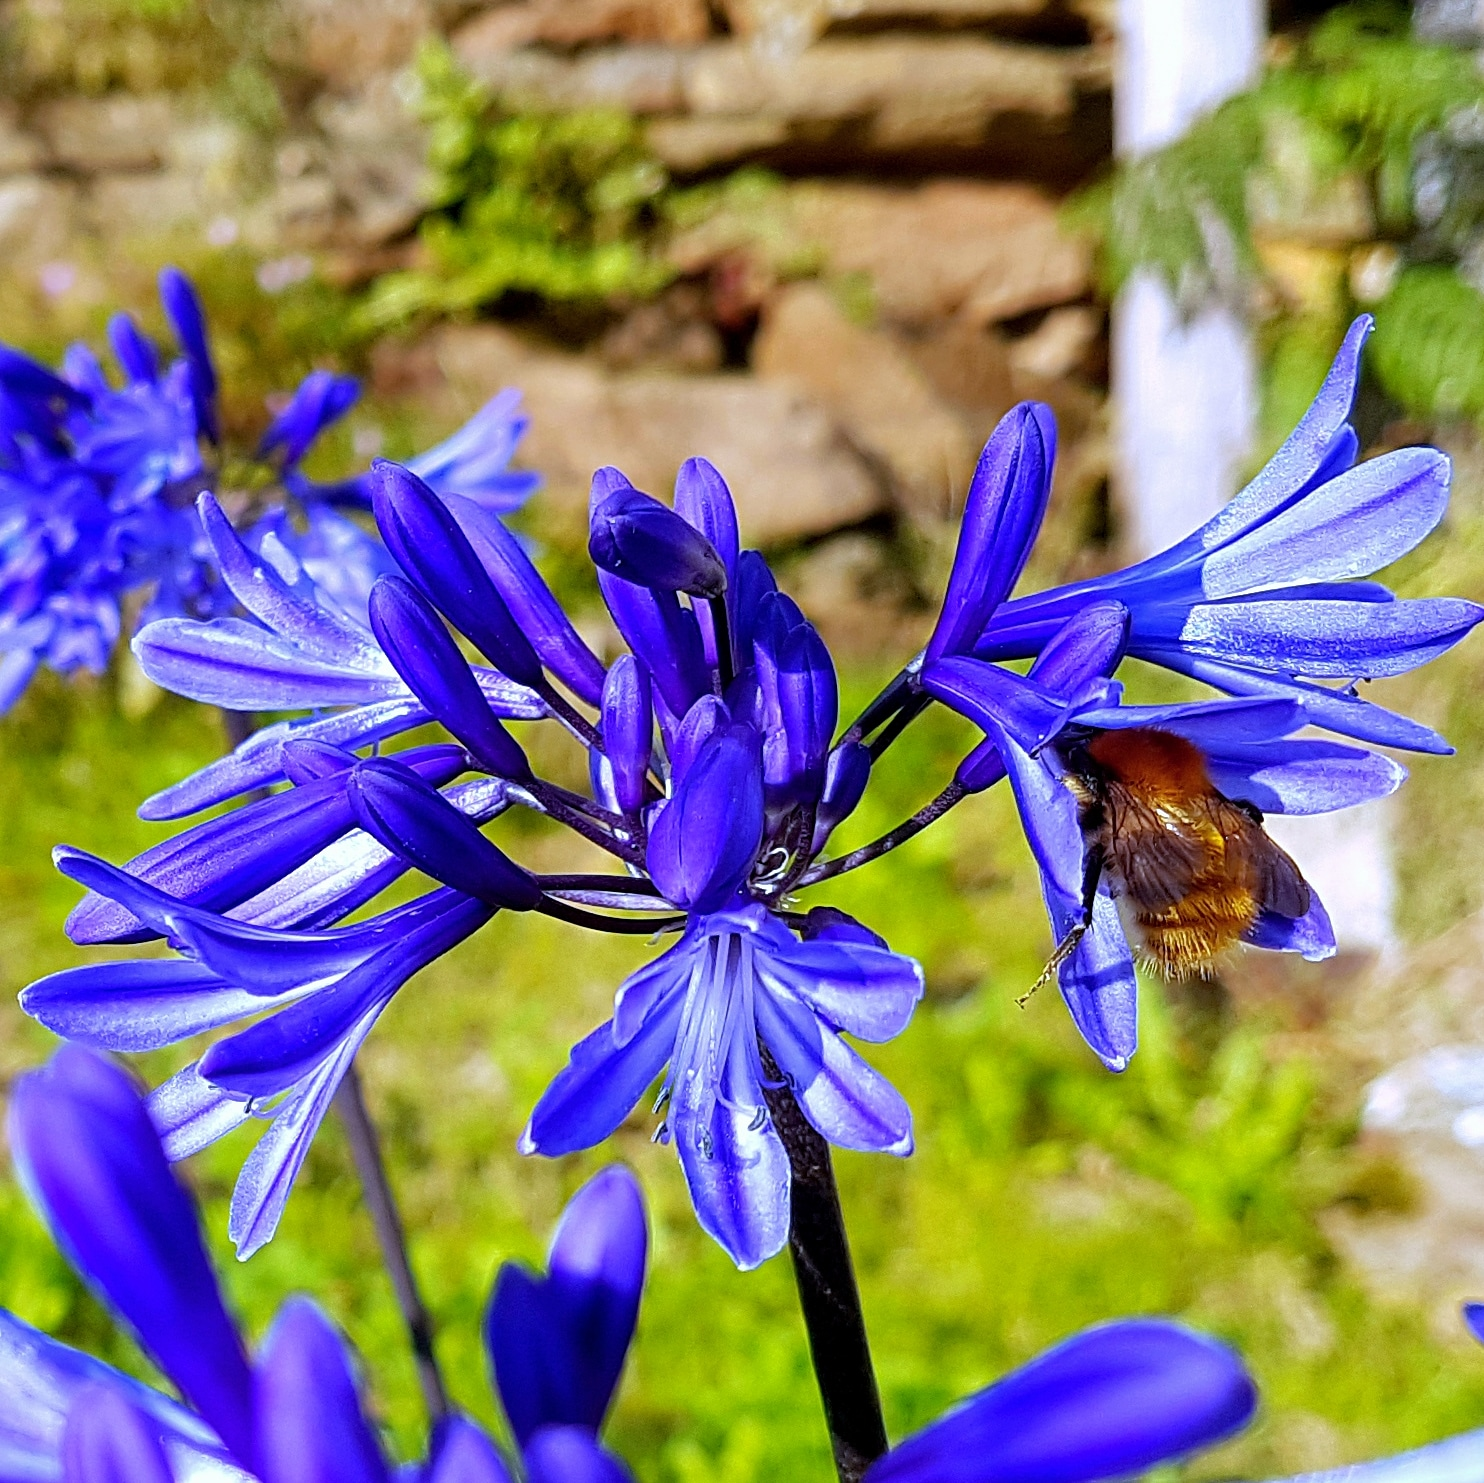 Agapanthus Midnight Blue nd BeeIMG_20180518_132408_387.jpg